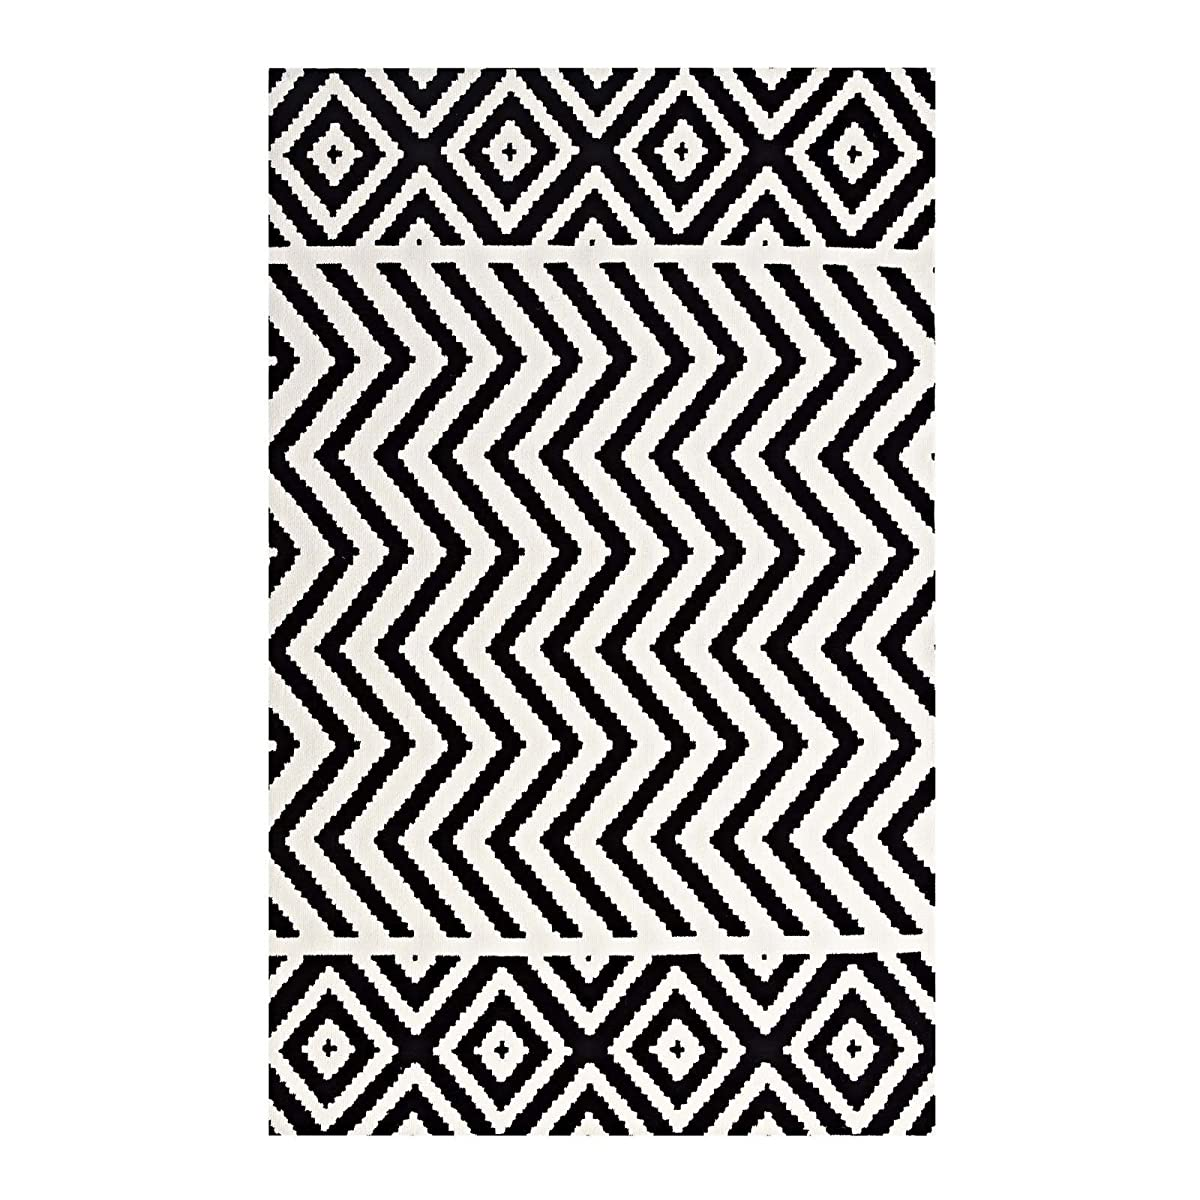 Modway R-1011A-58 Ailani Geometric Chevron/Diamond Area Rug, 5X8, Black and White